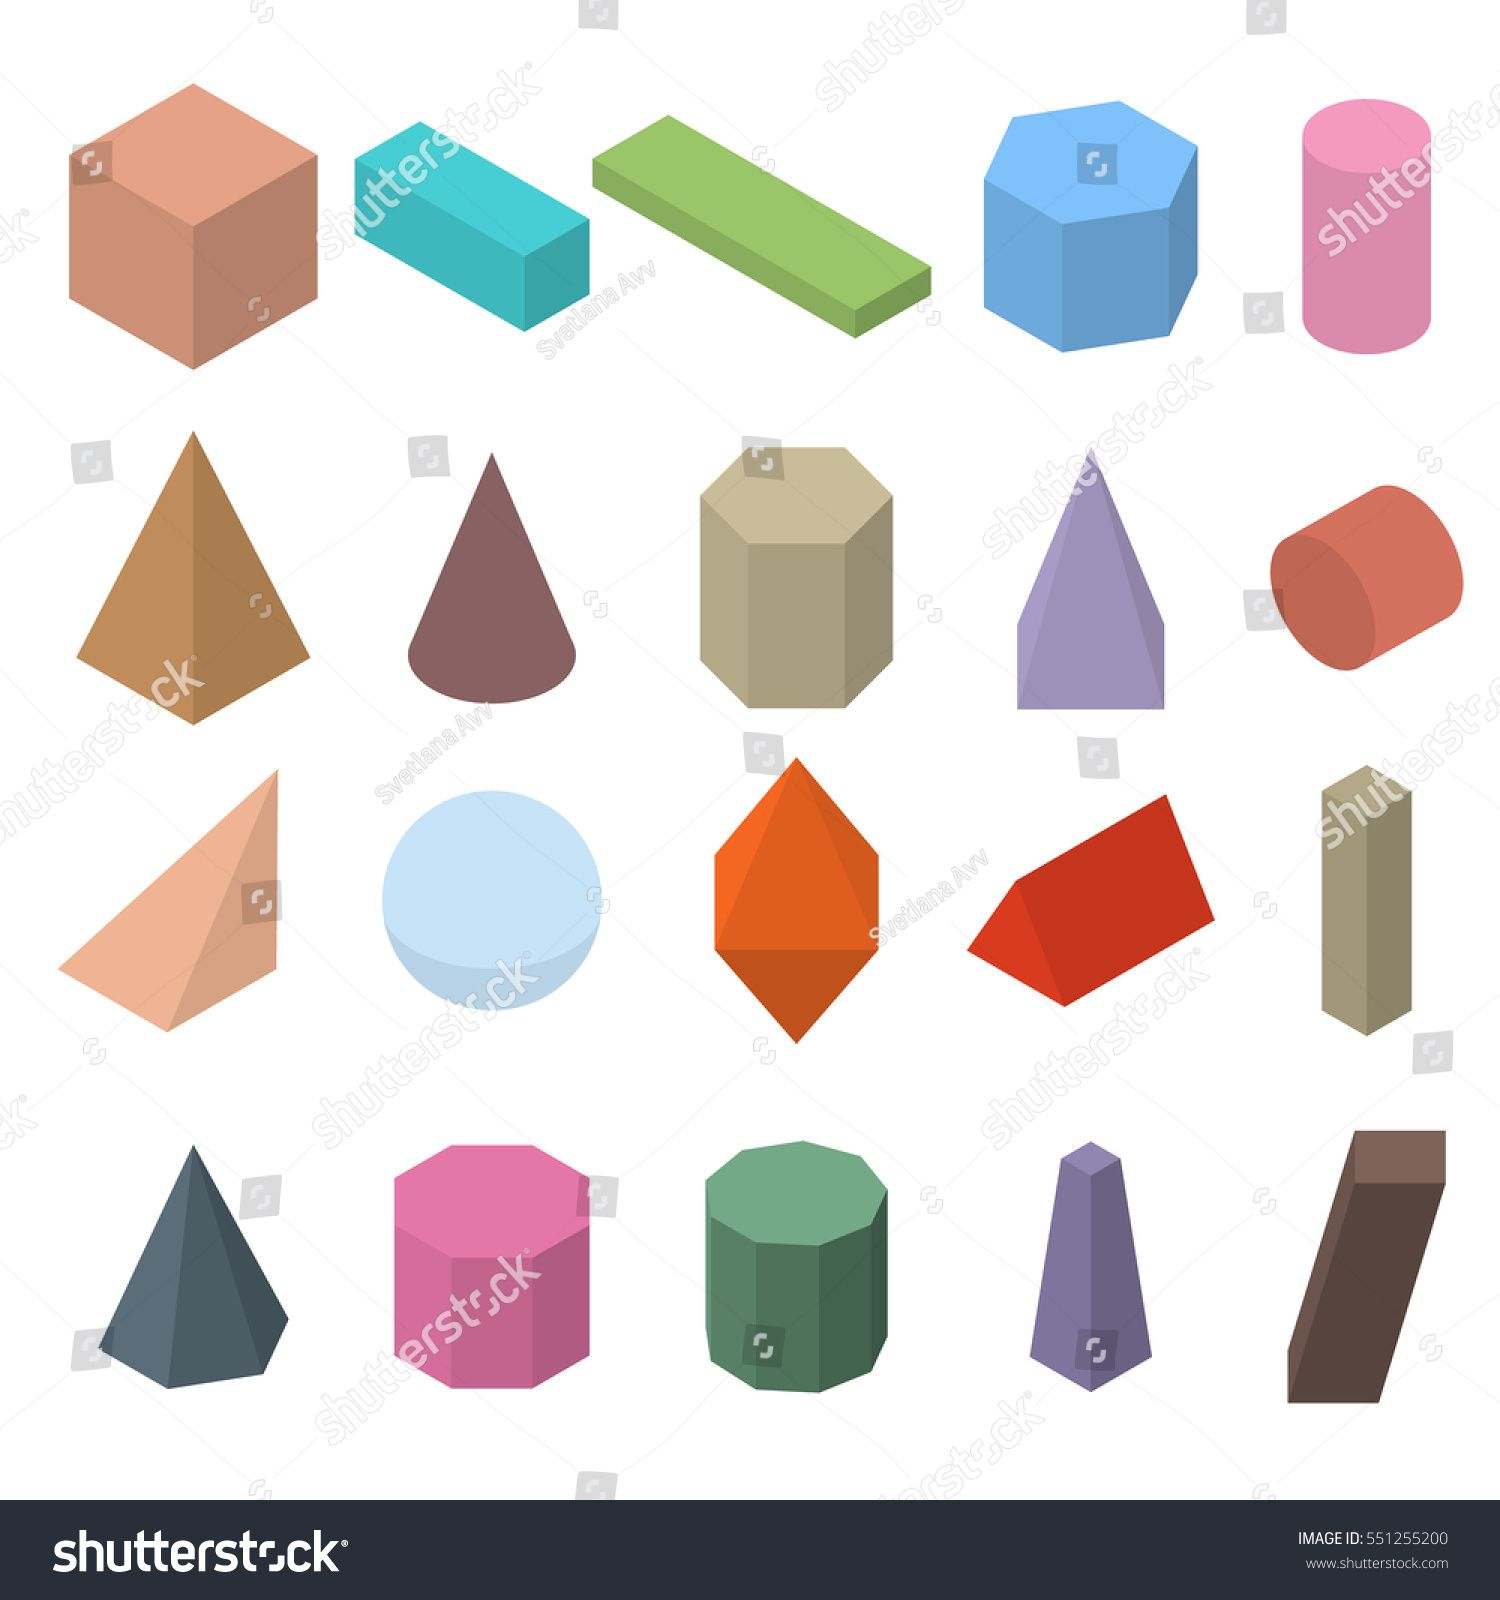 Set Of 3d Geometric Shapes Isometric Views The Science